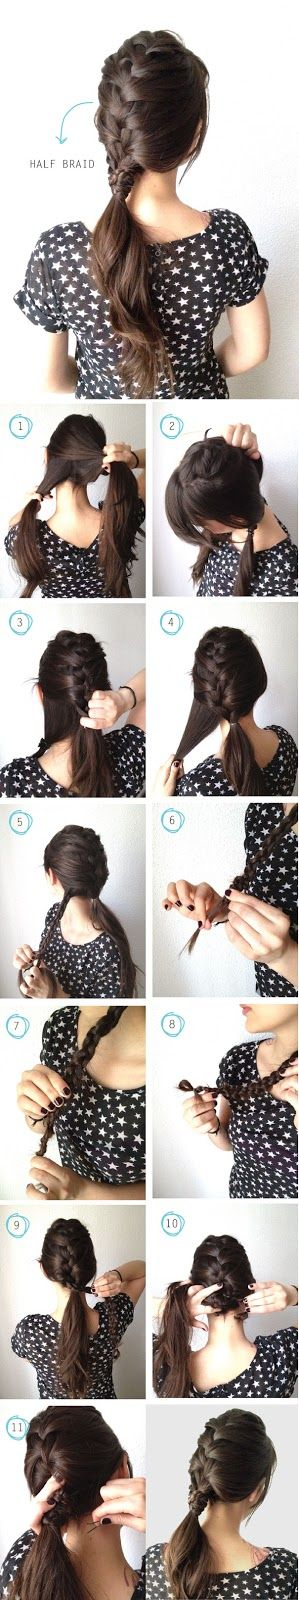 How to make half braid for your hair...:)